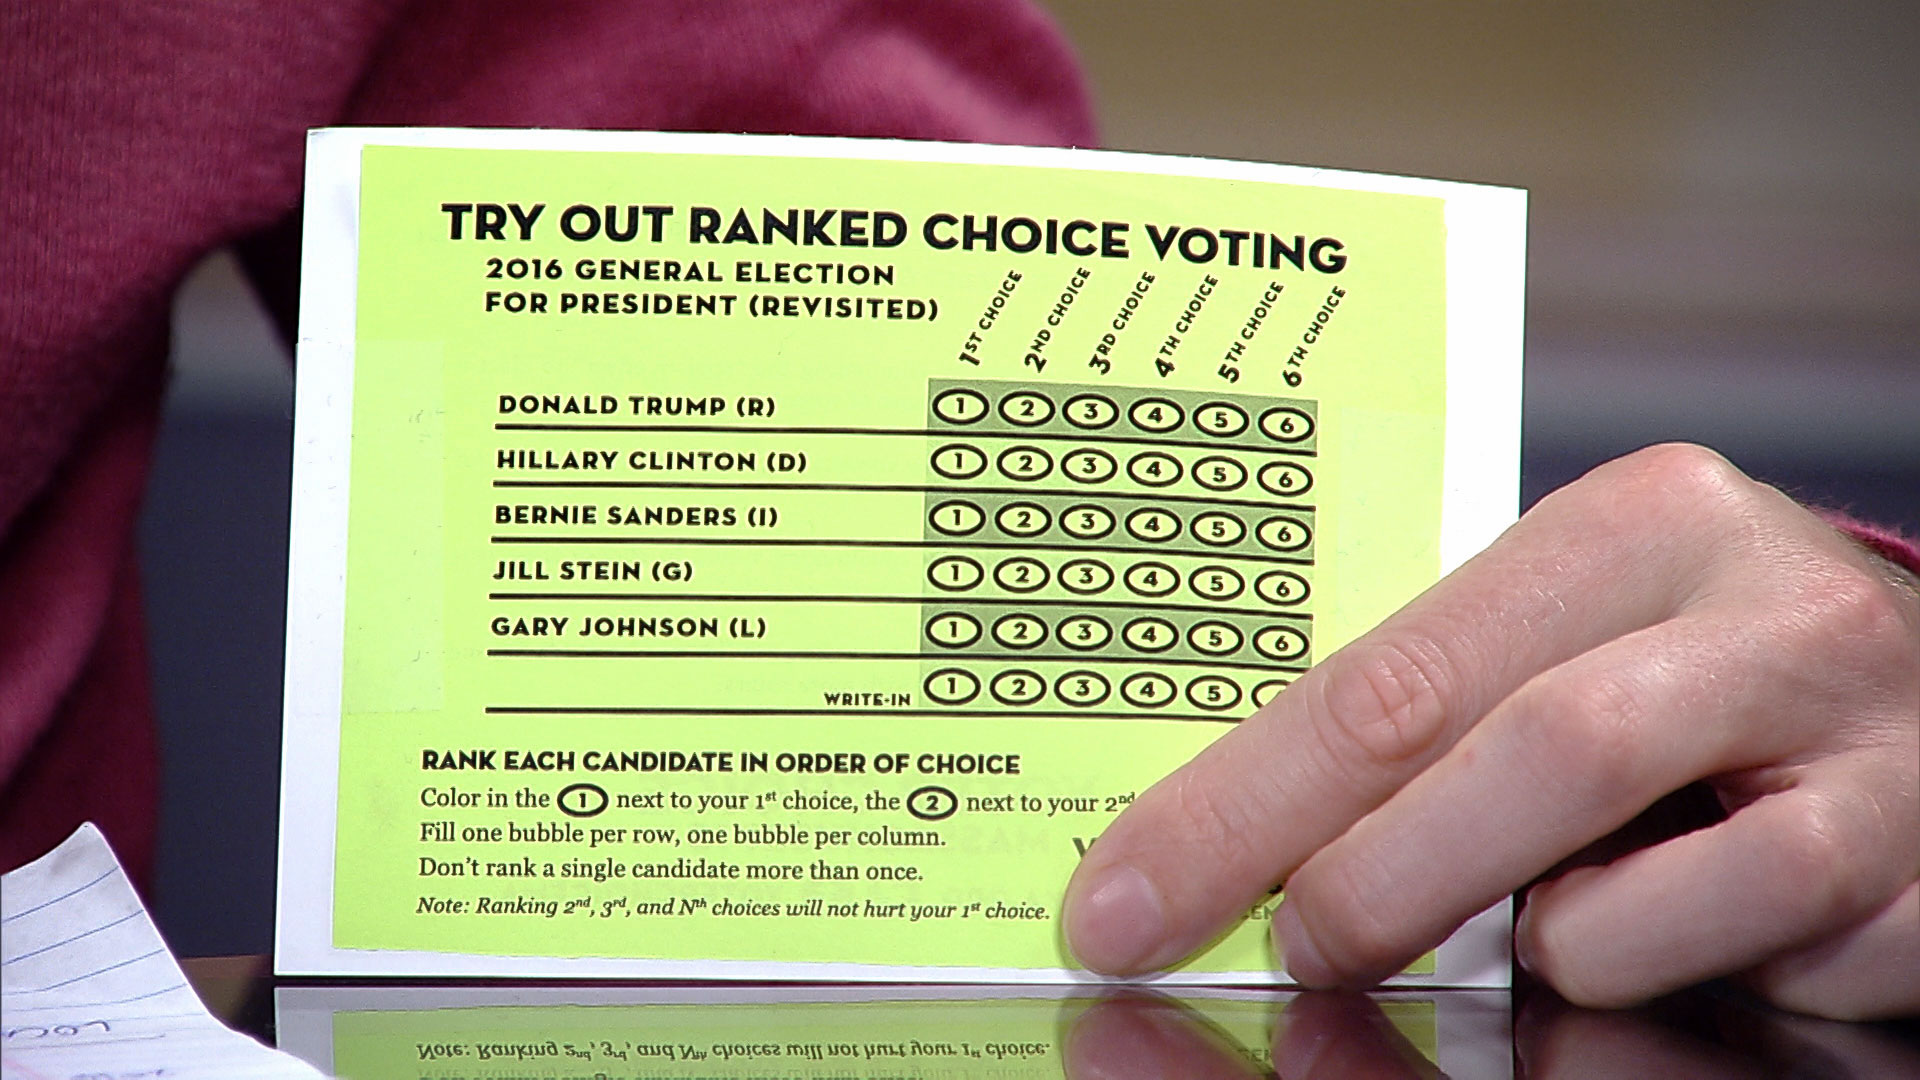 A flyer for ranked choice voting from the group Voter Choice Massachusetts.